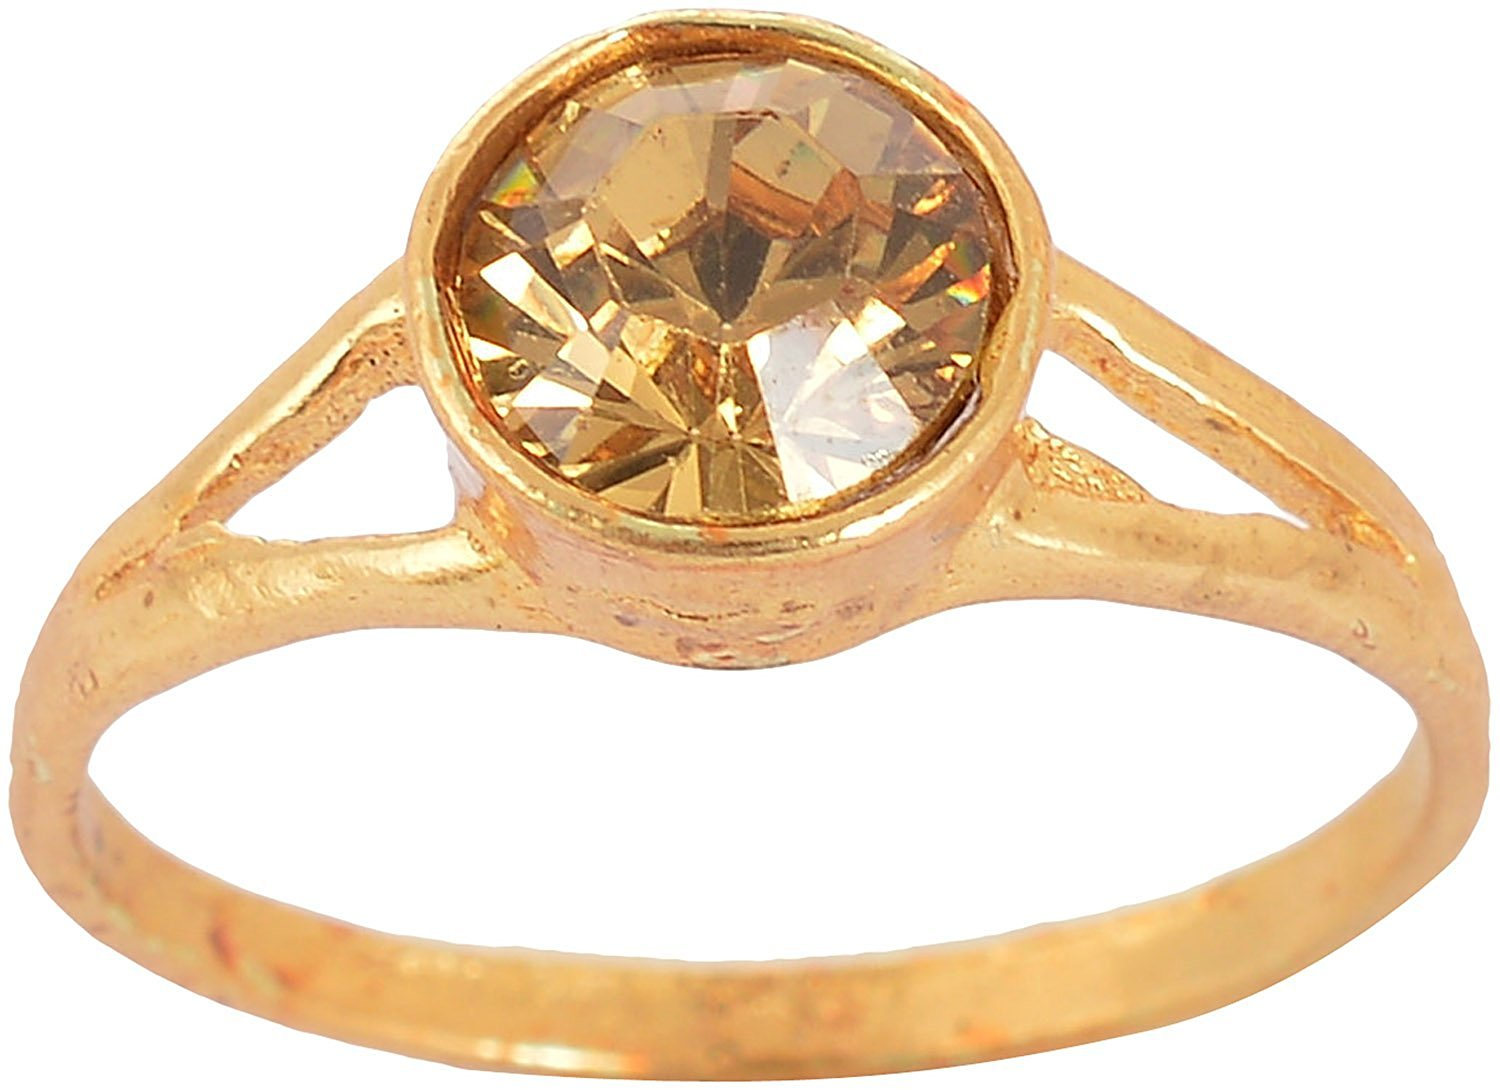 Handicraft Kottage Women's Gold Plated Alloy Ring with Gold Crystal (AGR 016)